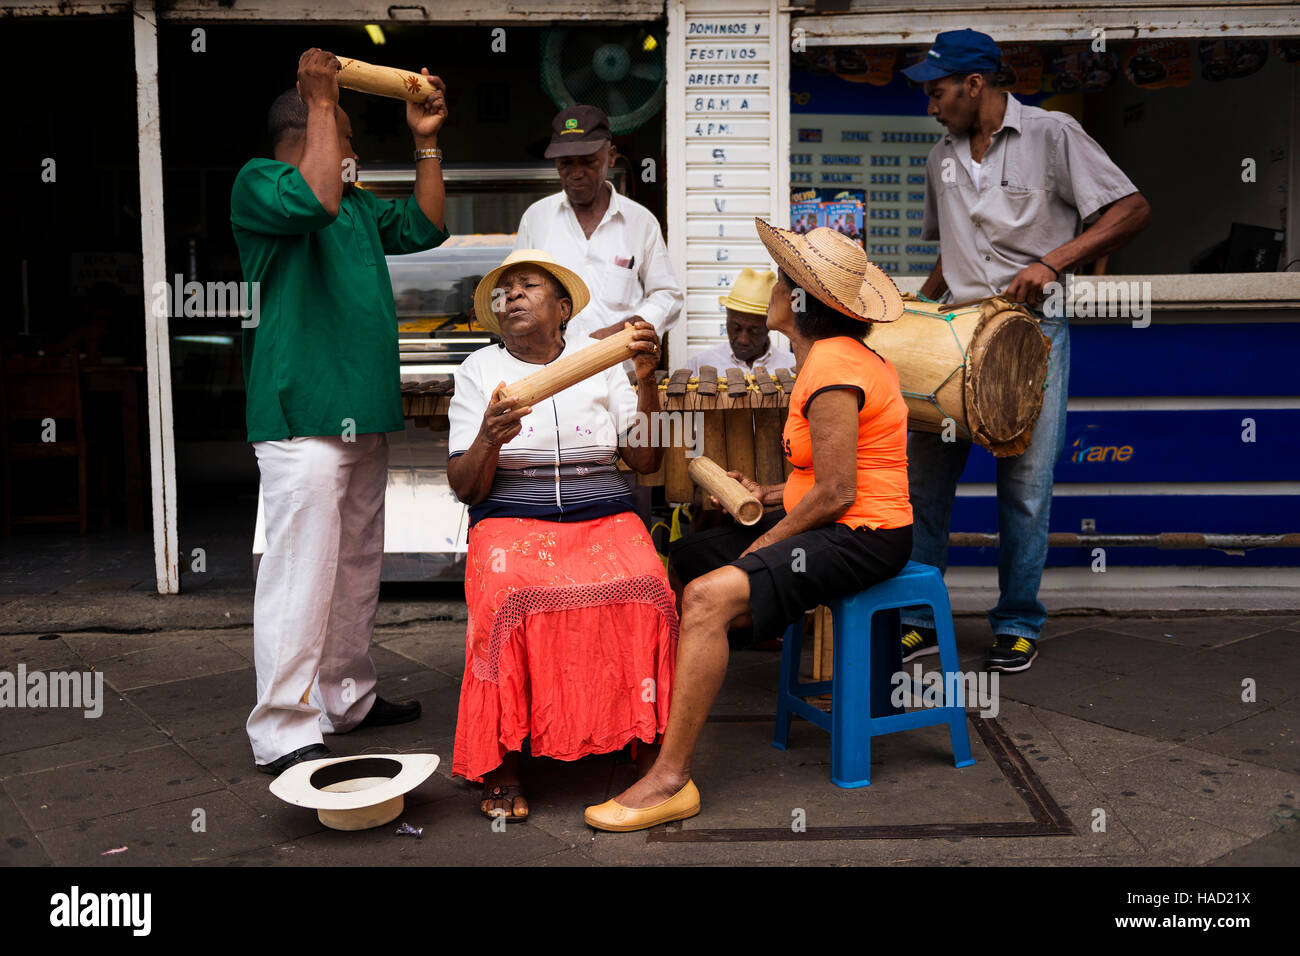 Cali, Colombia - February 6, 2014: Street musicians playing in a street in the city of Cali, in Colombia Stock Photo